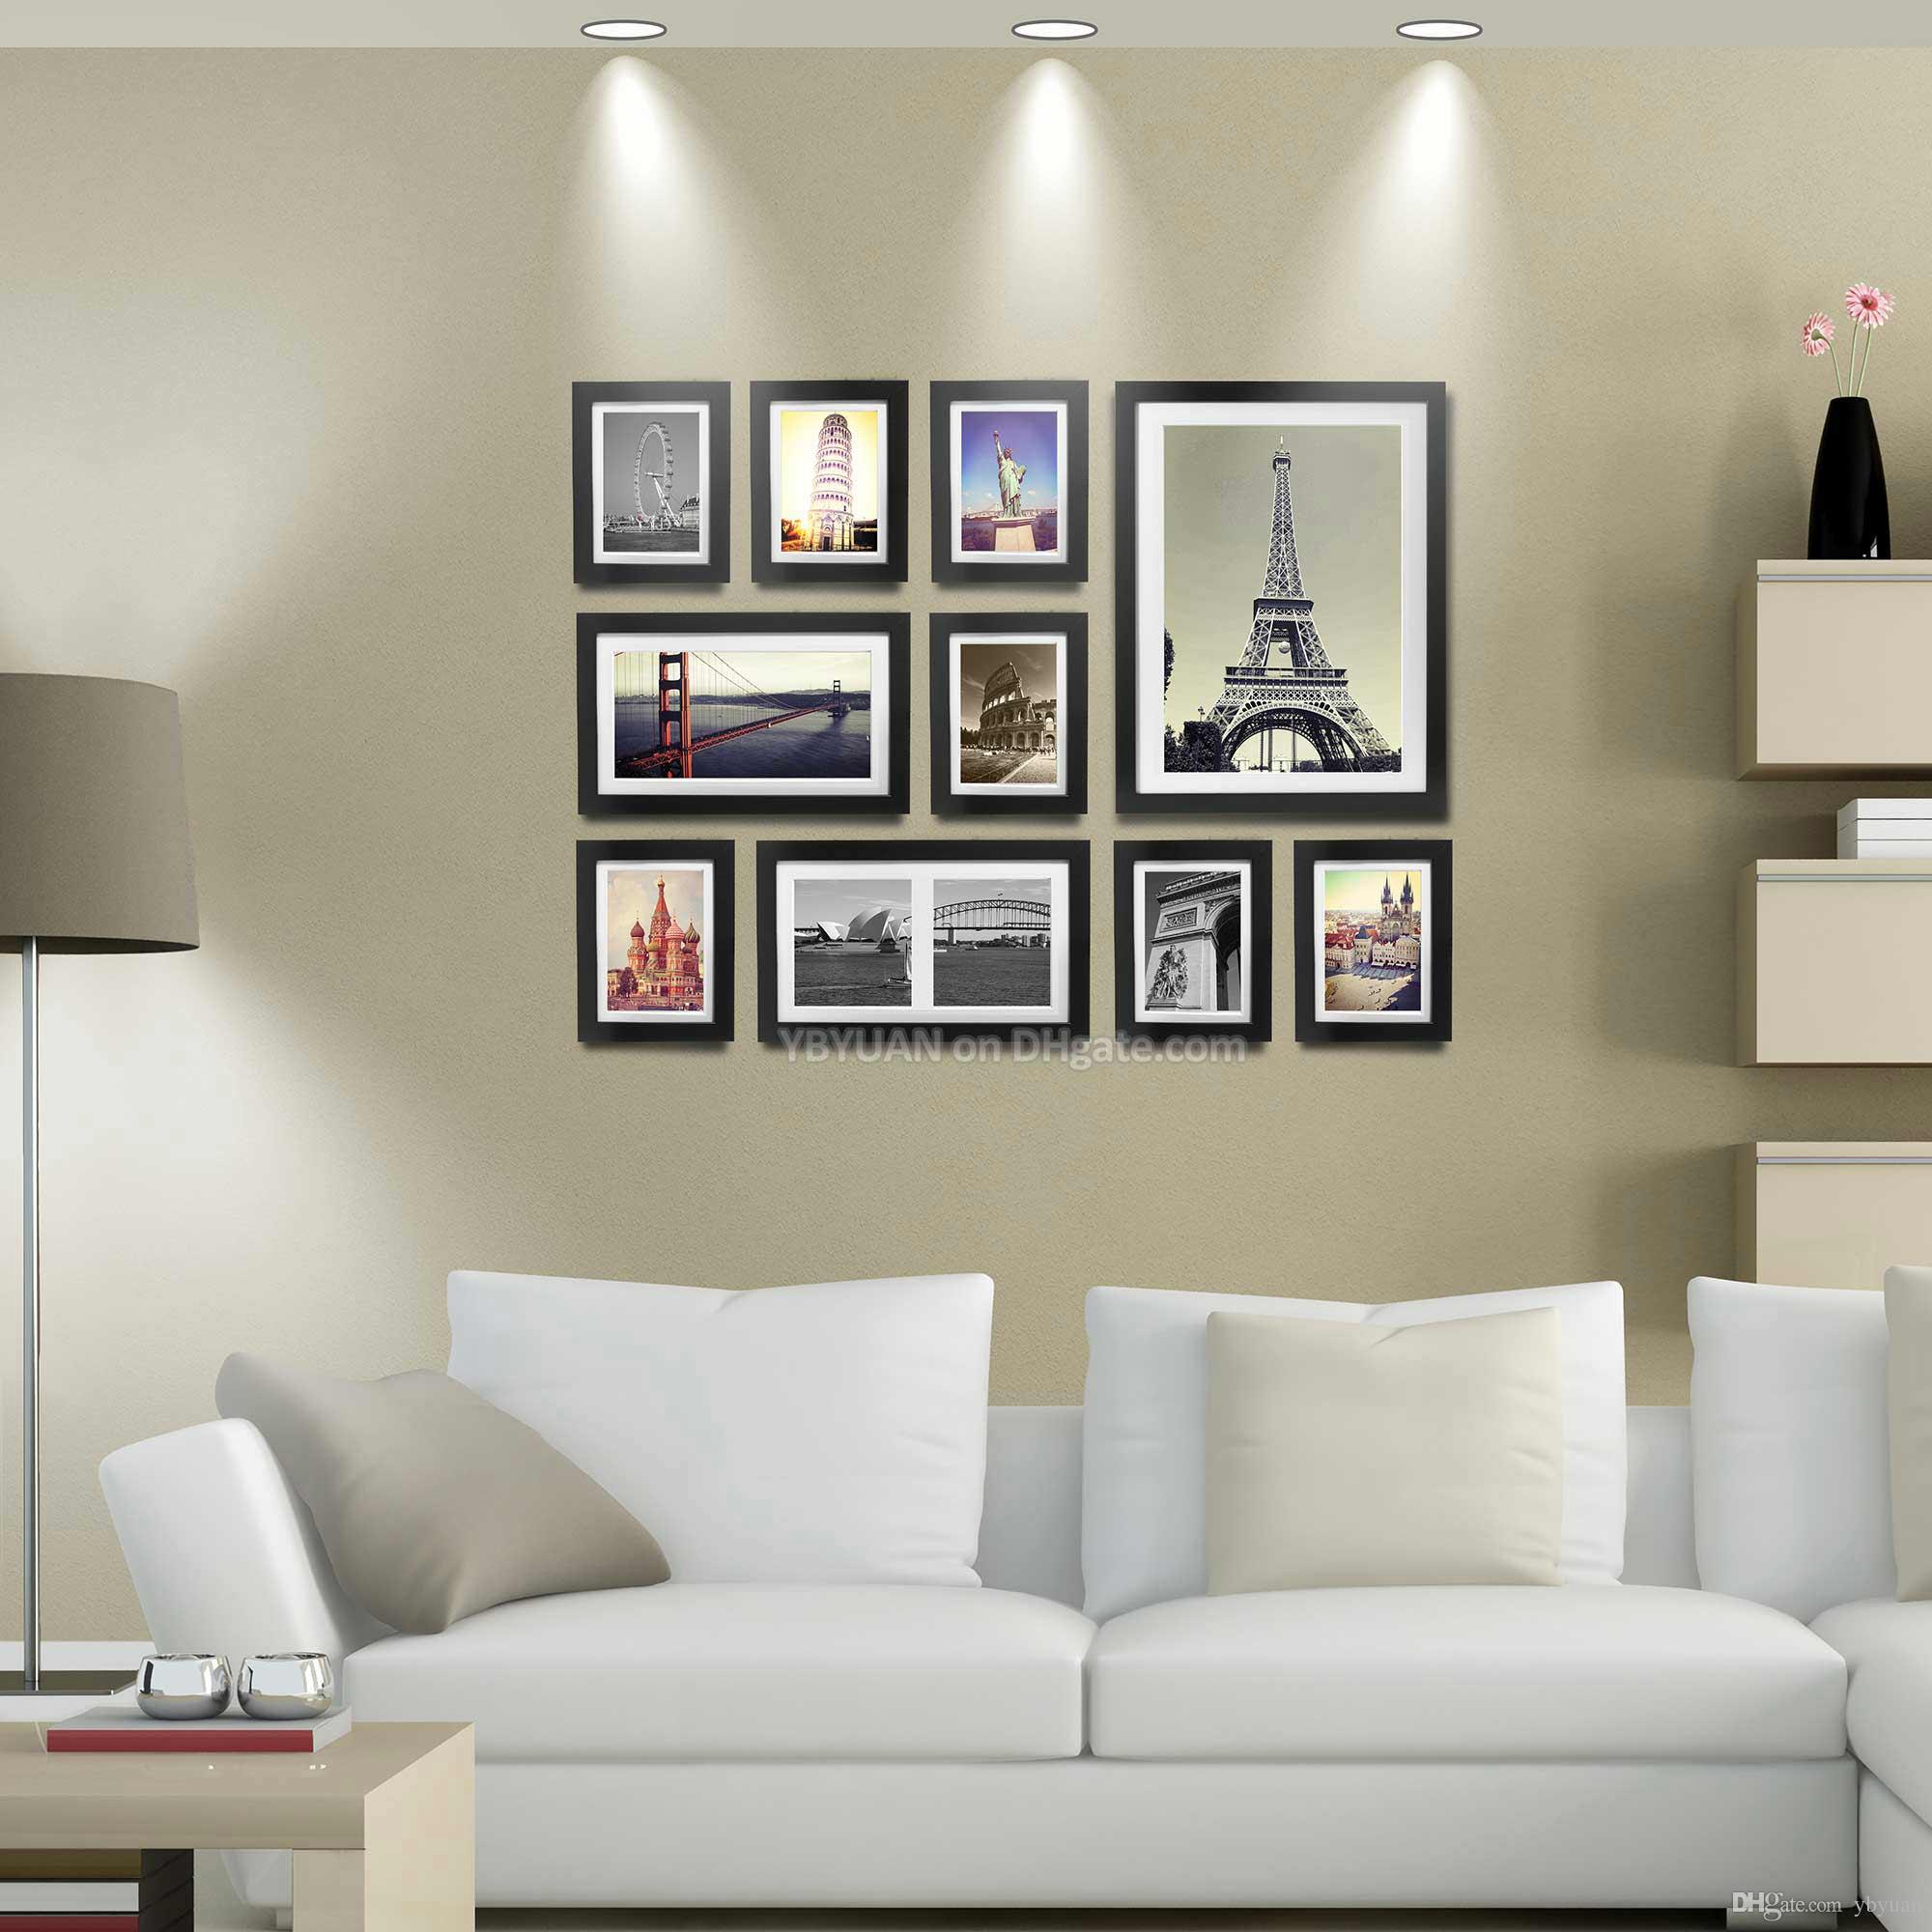 2019 Wood Photo Frame Gallery Wall Modern Style Flat Moulding Border